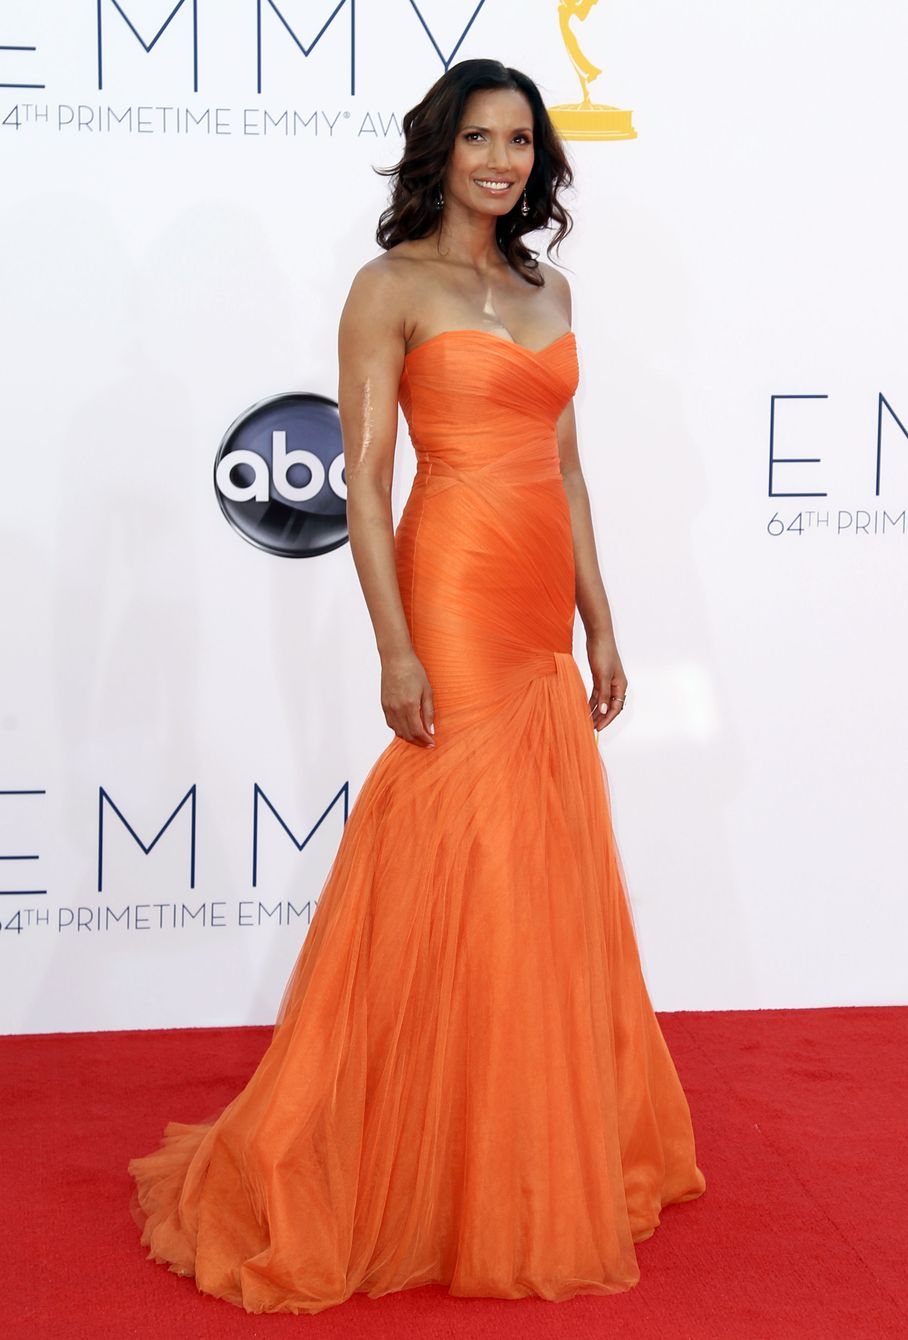 Padma Lakshmi - 2012 Emmy Awards, Red Carpet Looks